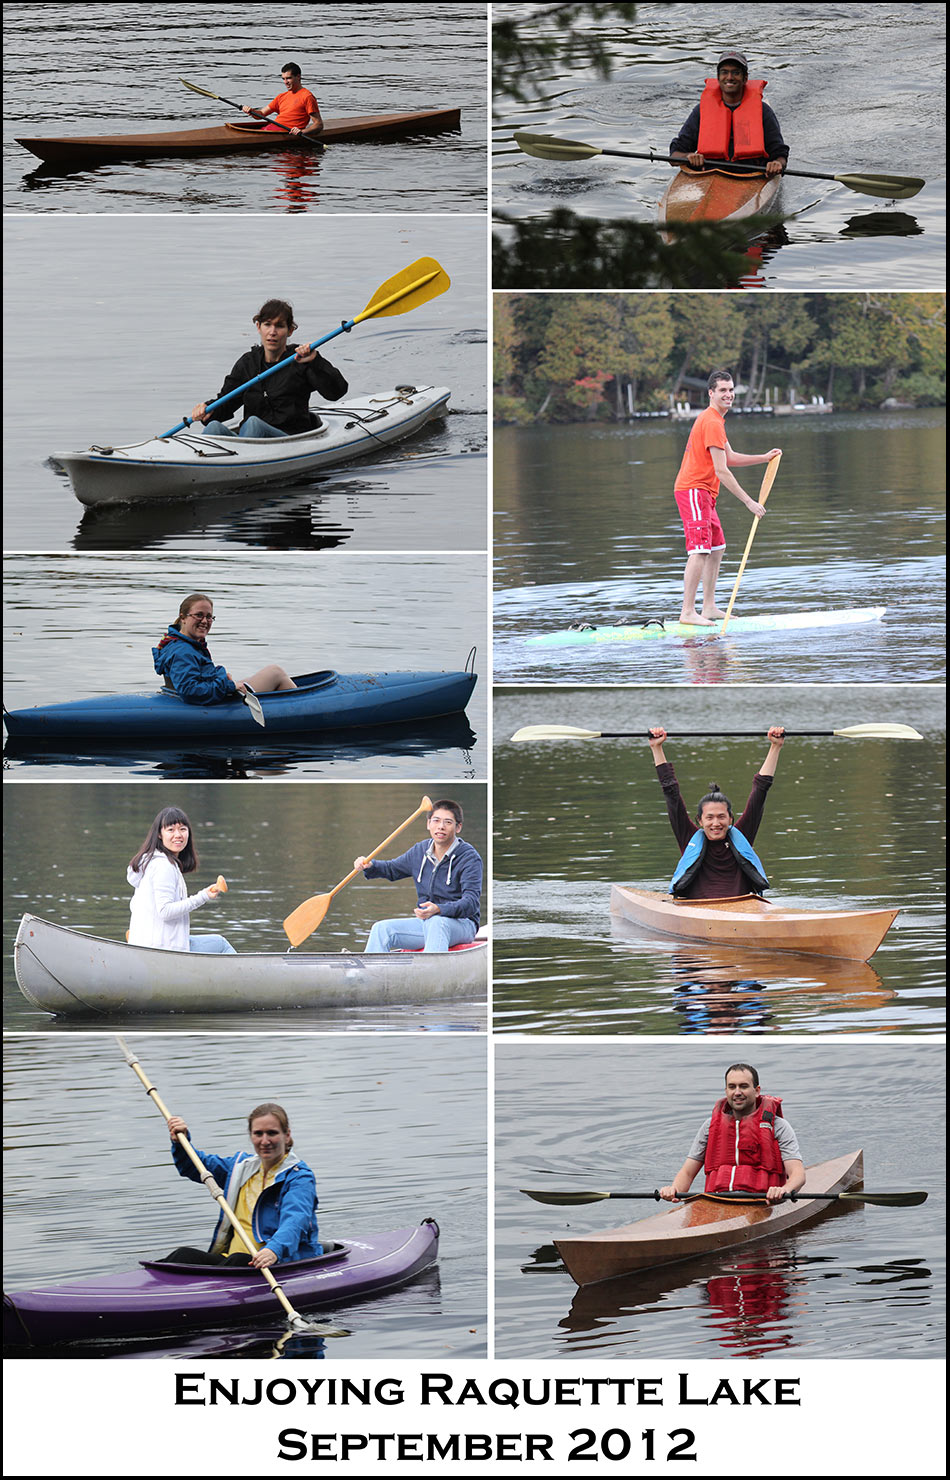 2012 Raquette Lake - collage